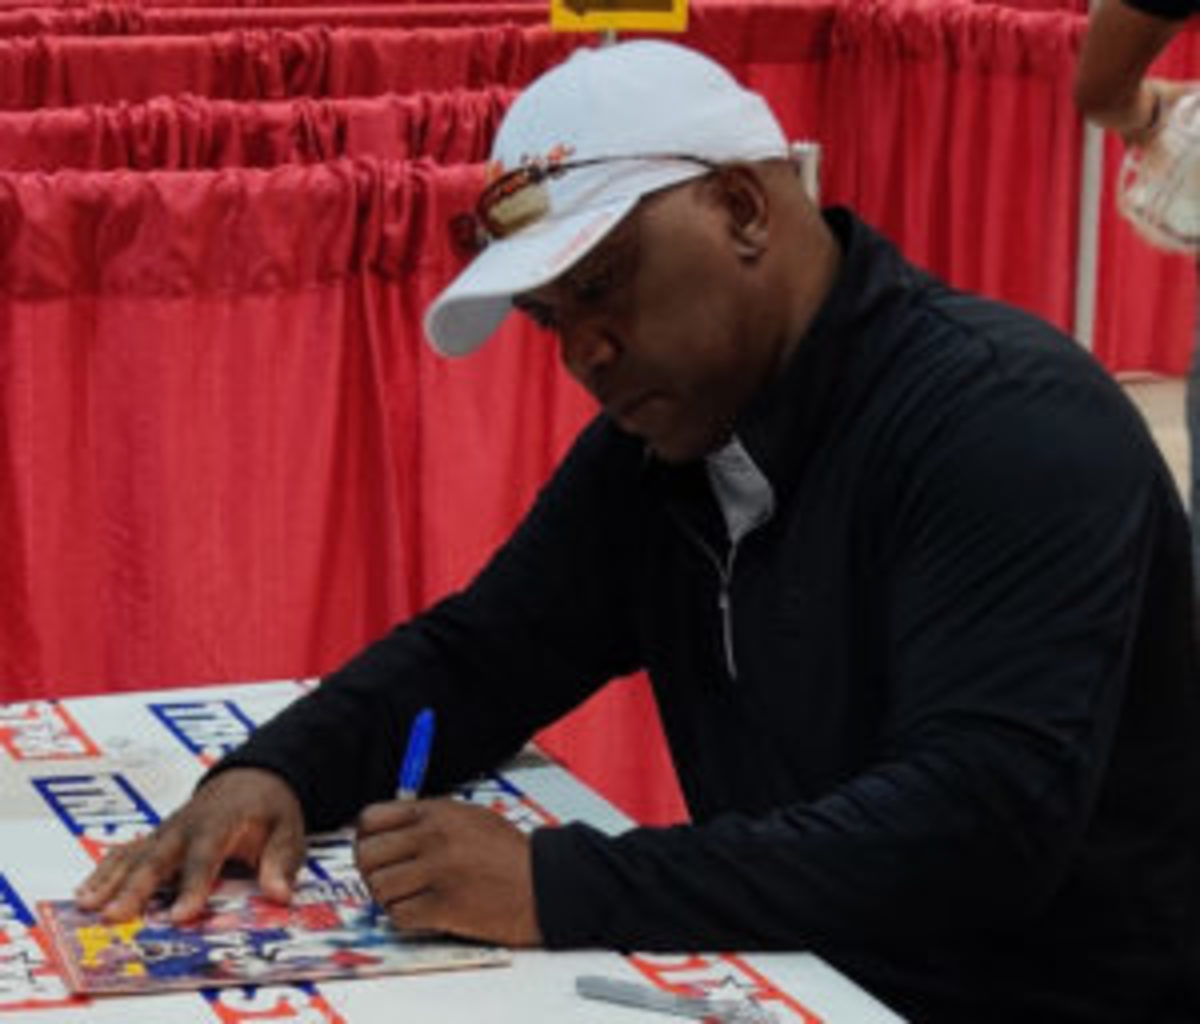 Football Hall of Famer Thurman Thomas signs autographs at the autograph pavilion.